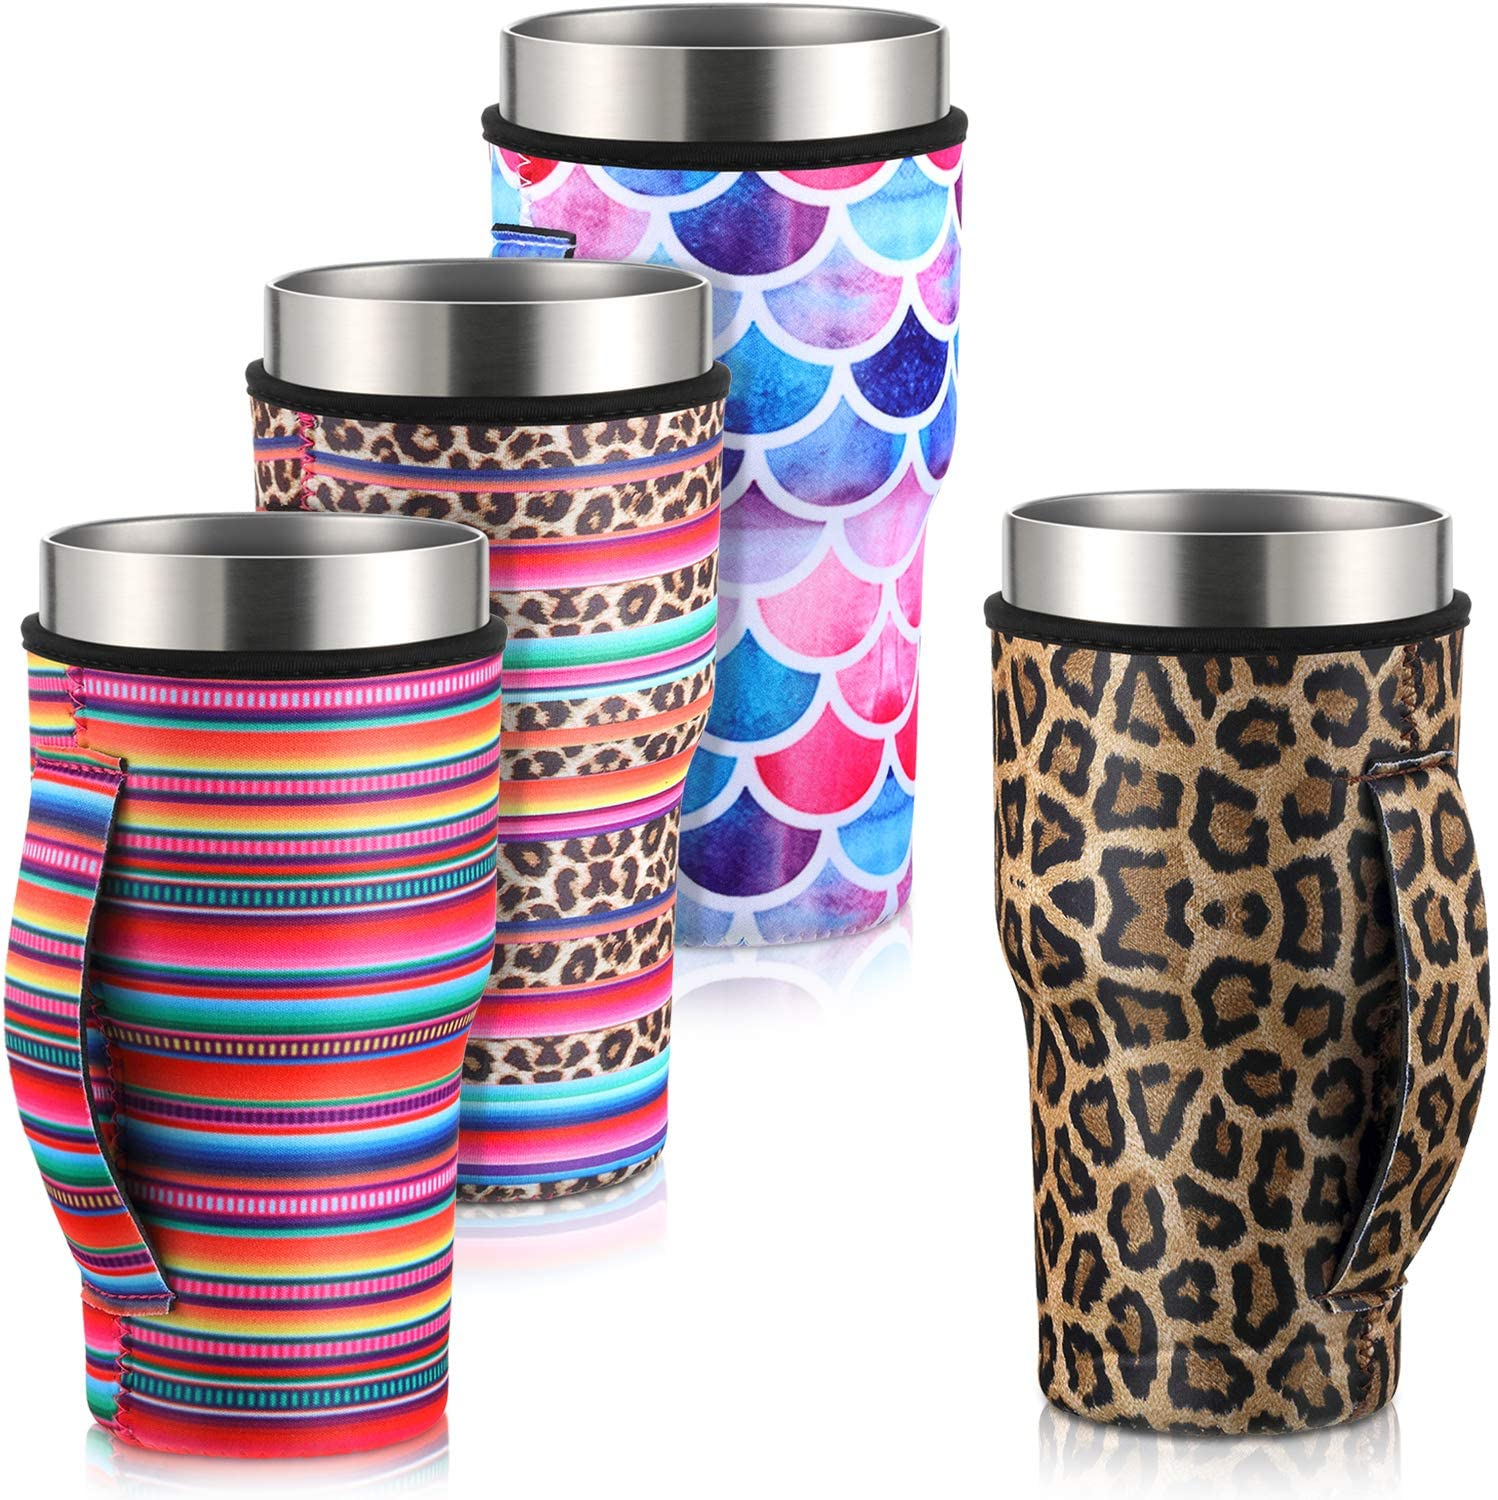 4 Pieces Iced Coffee Cup Sleeve Reusable Neoprene Insulated Sleeves Cup Cover Holders Drinks Sleeve Holder for 30-32 oz Cold Hot Beverages, 4 Styles